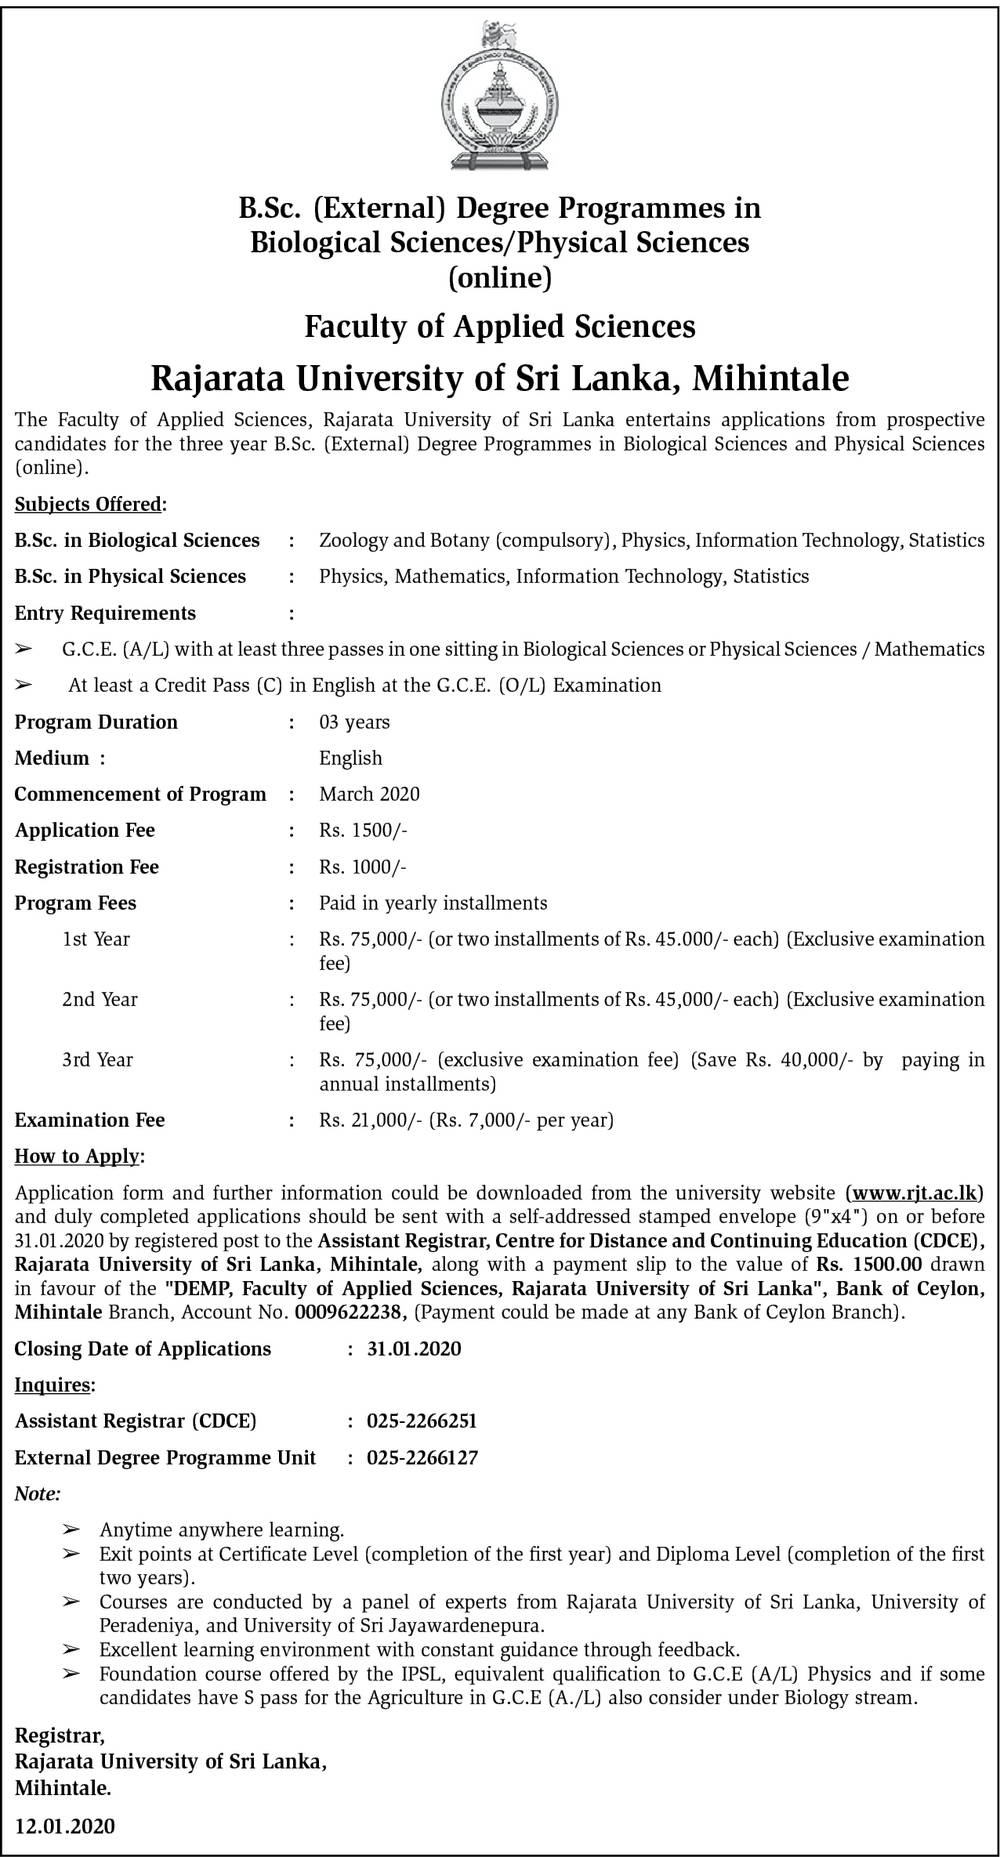 B. Sc. (External) Degree Programmes in Biological Sciences/Physical Sciences - Faculty of Applied Sciences - Rajarata University of Sri Lanka